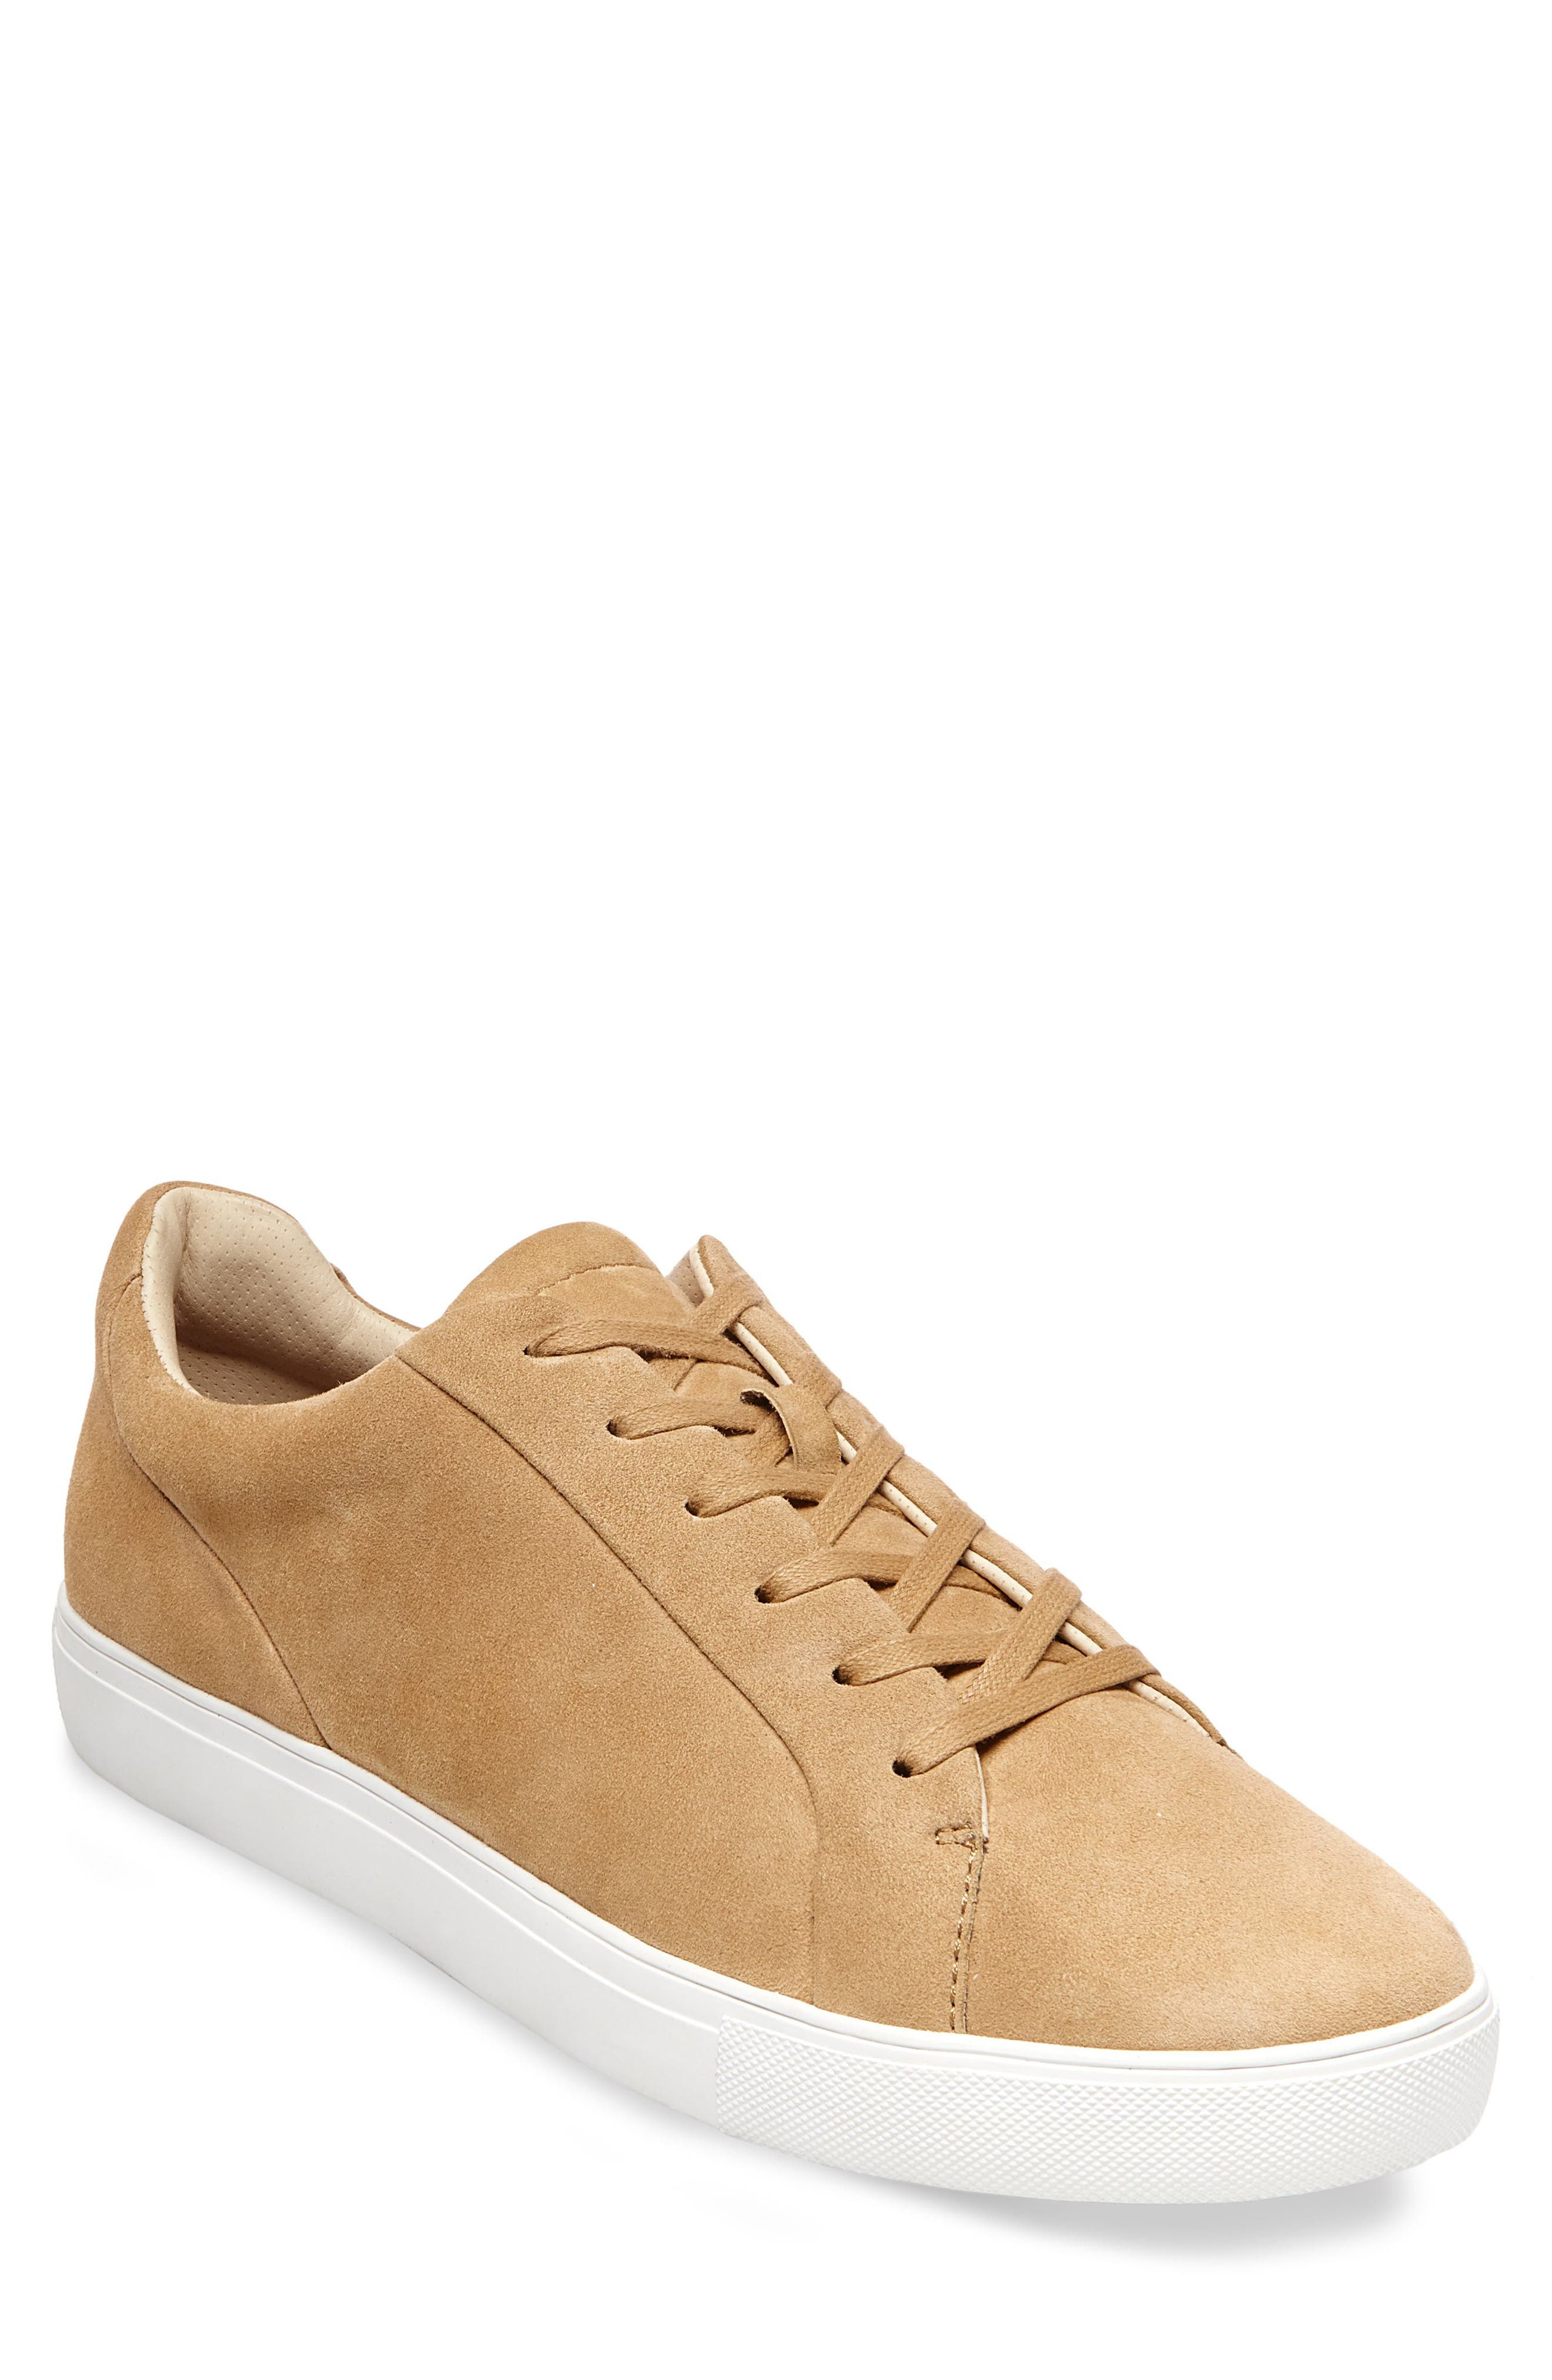 x GQ James Sneaker,                         Main,                         color, Tan Suede